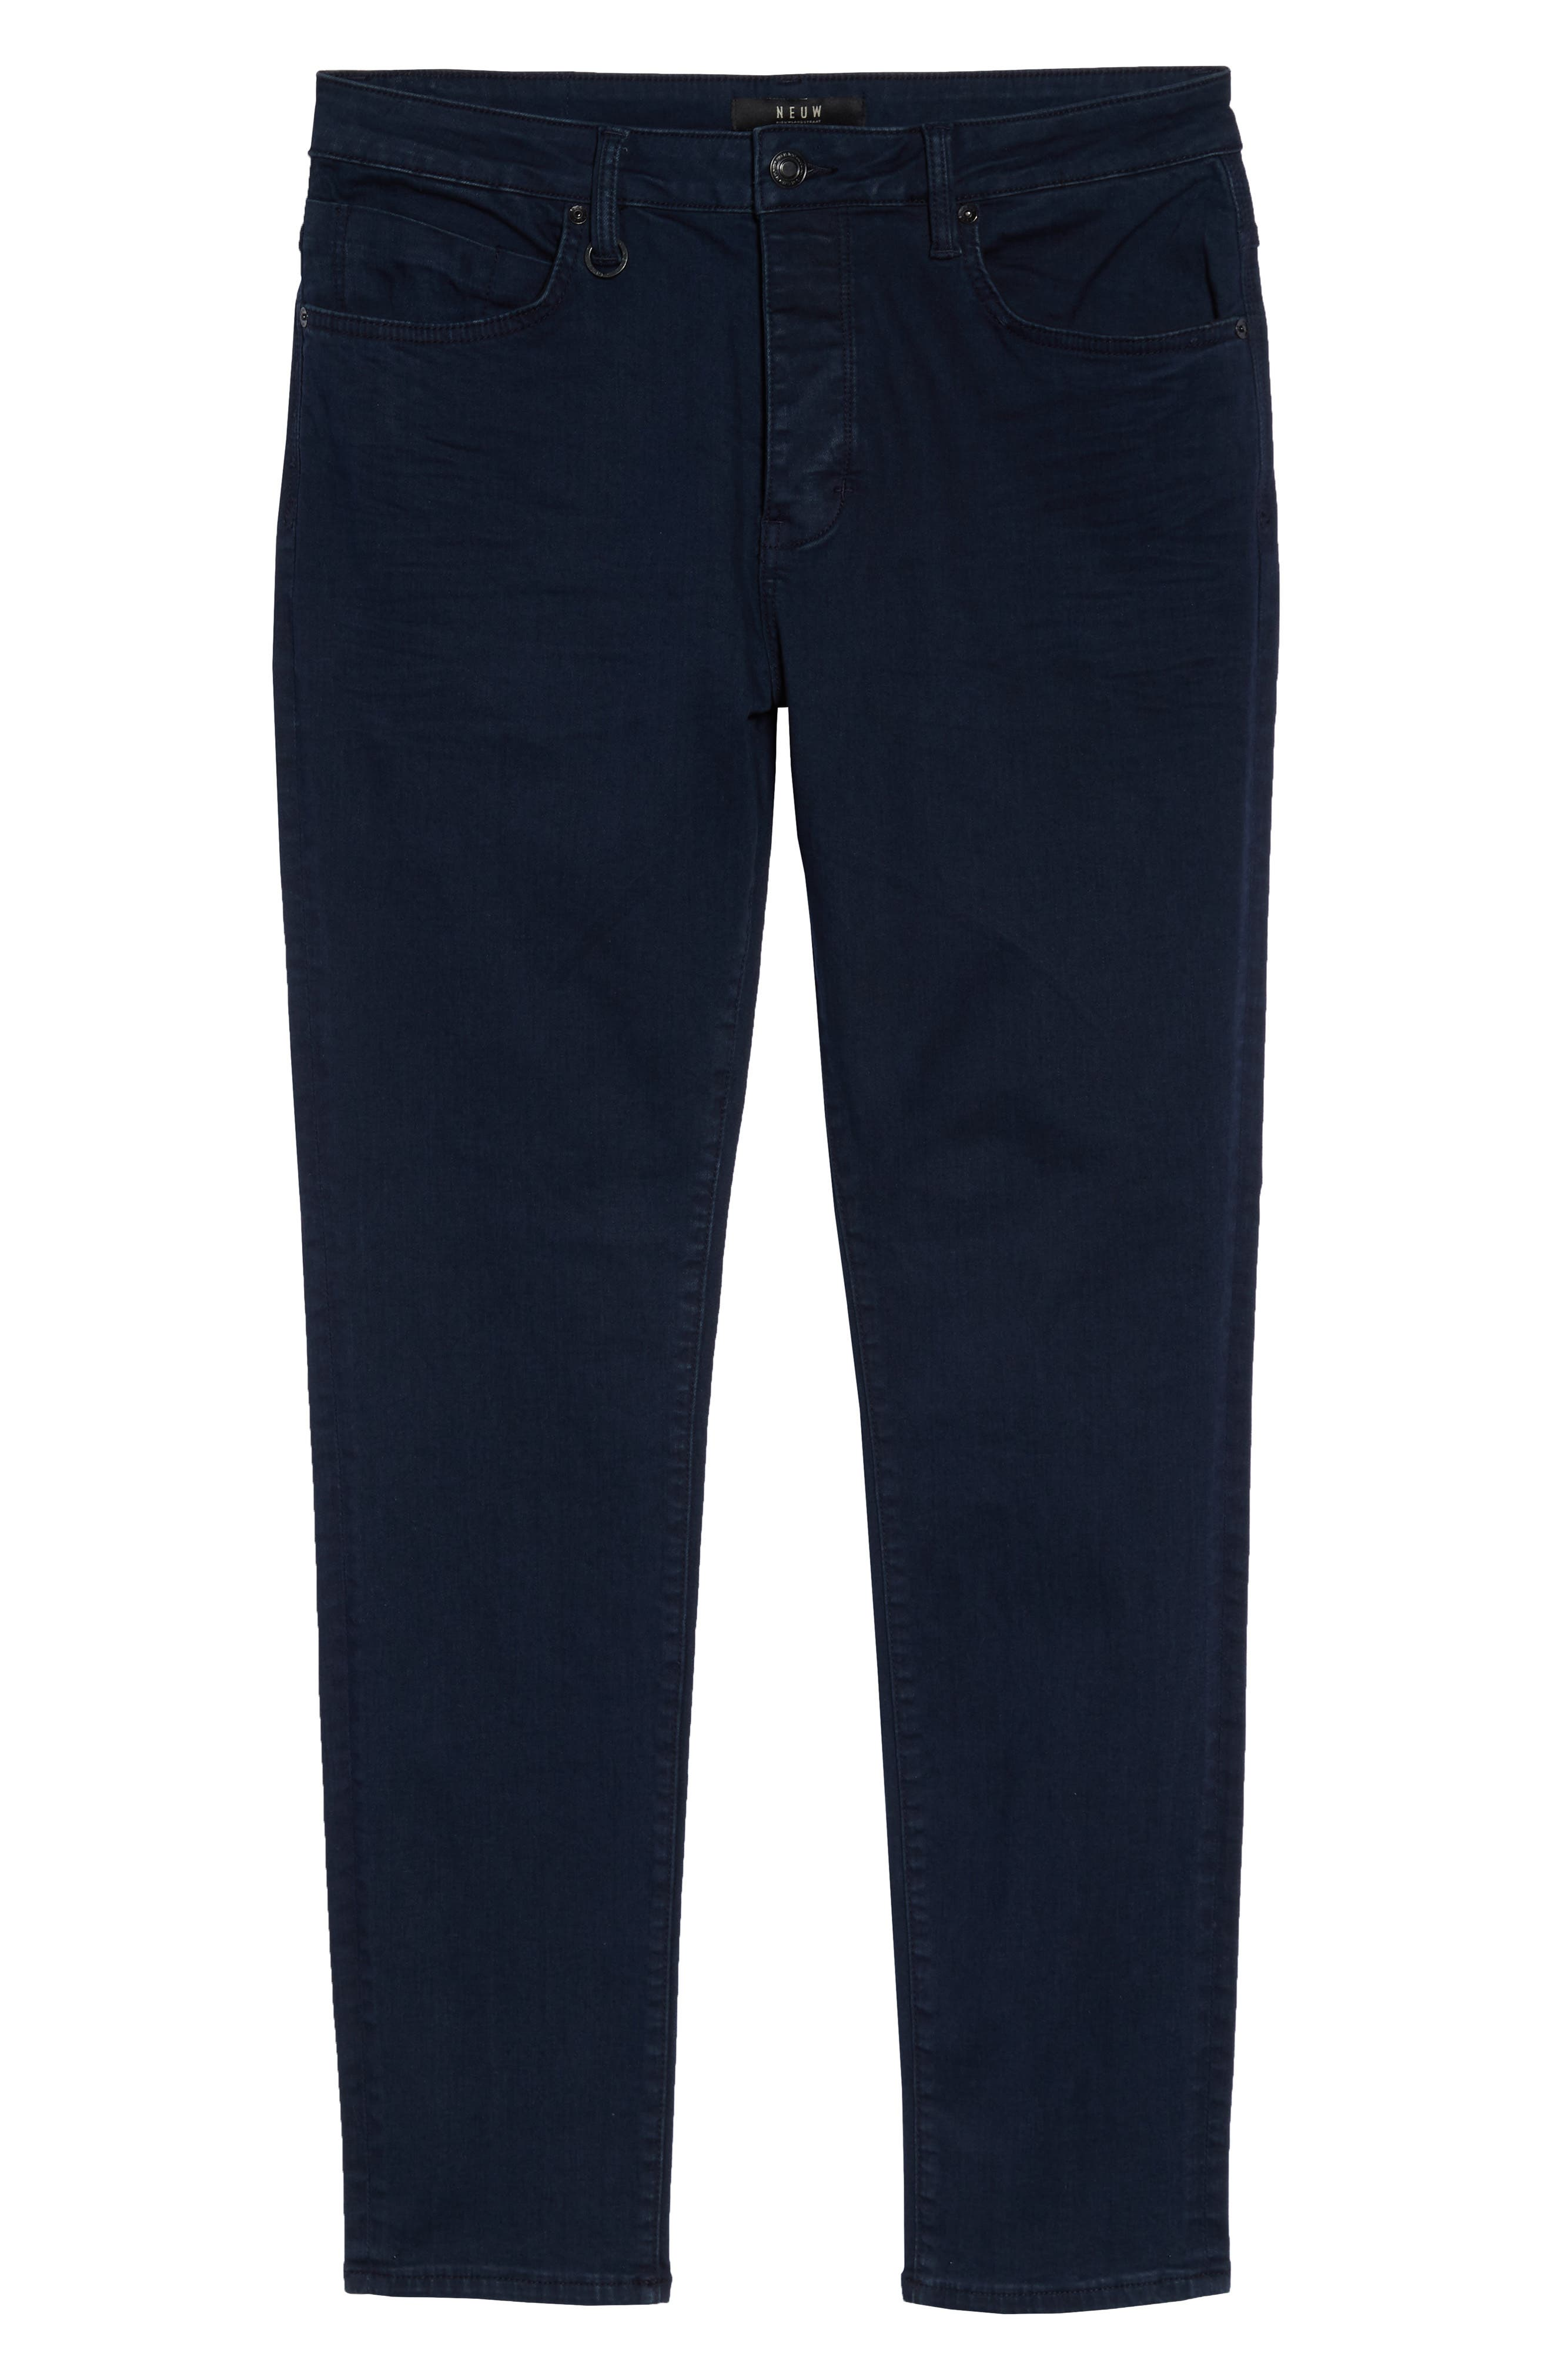 Ray Slim Fit Jeans,                             Alternate thumbnail 4, color,                             NORDIC BLUE